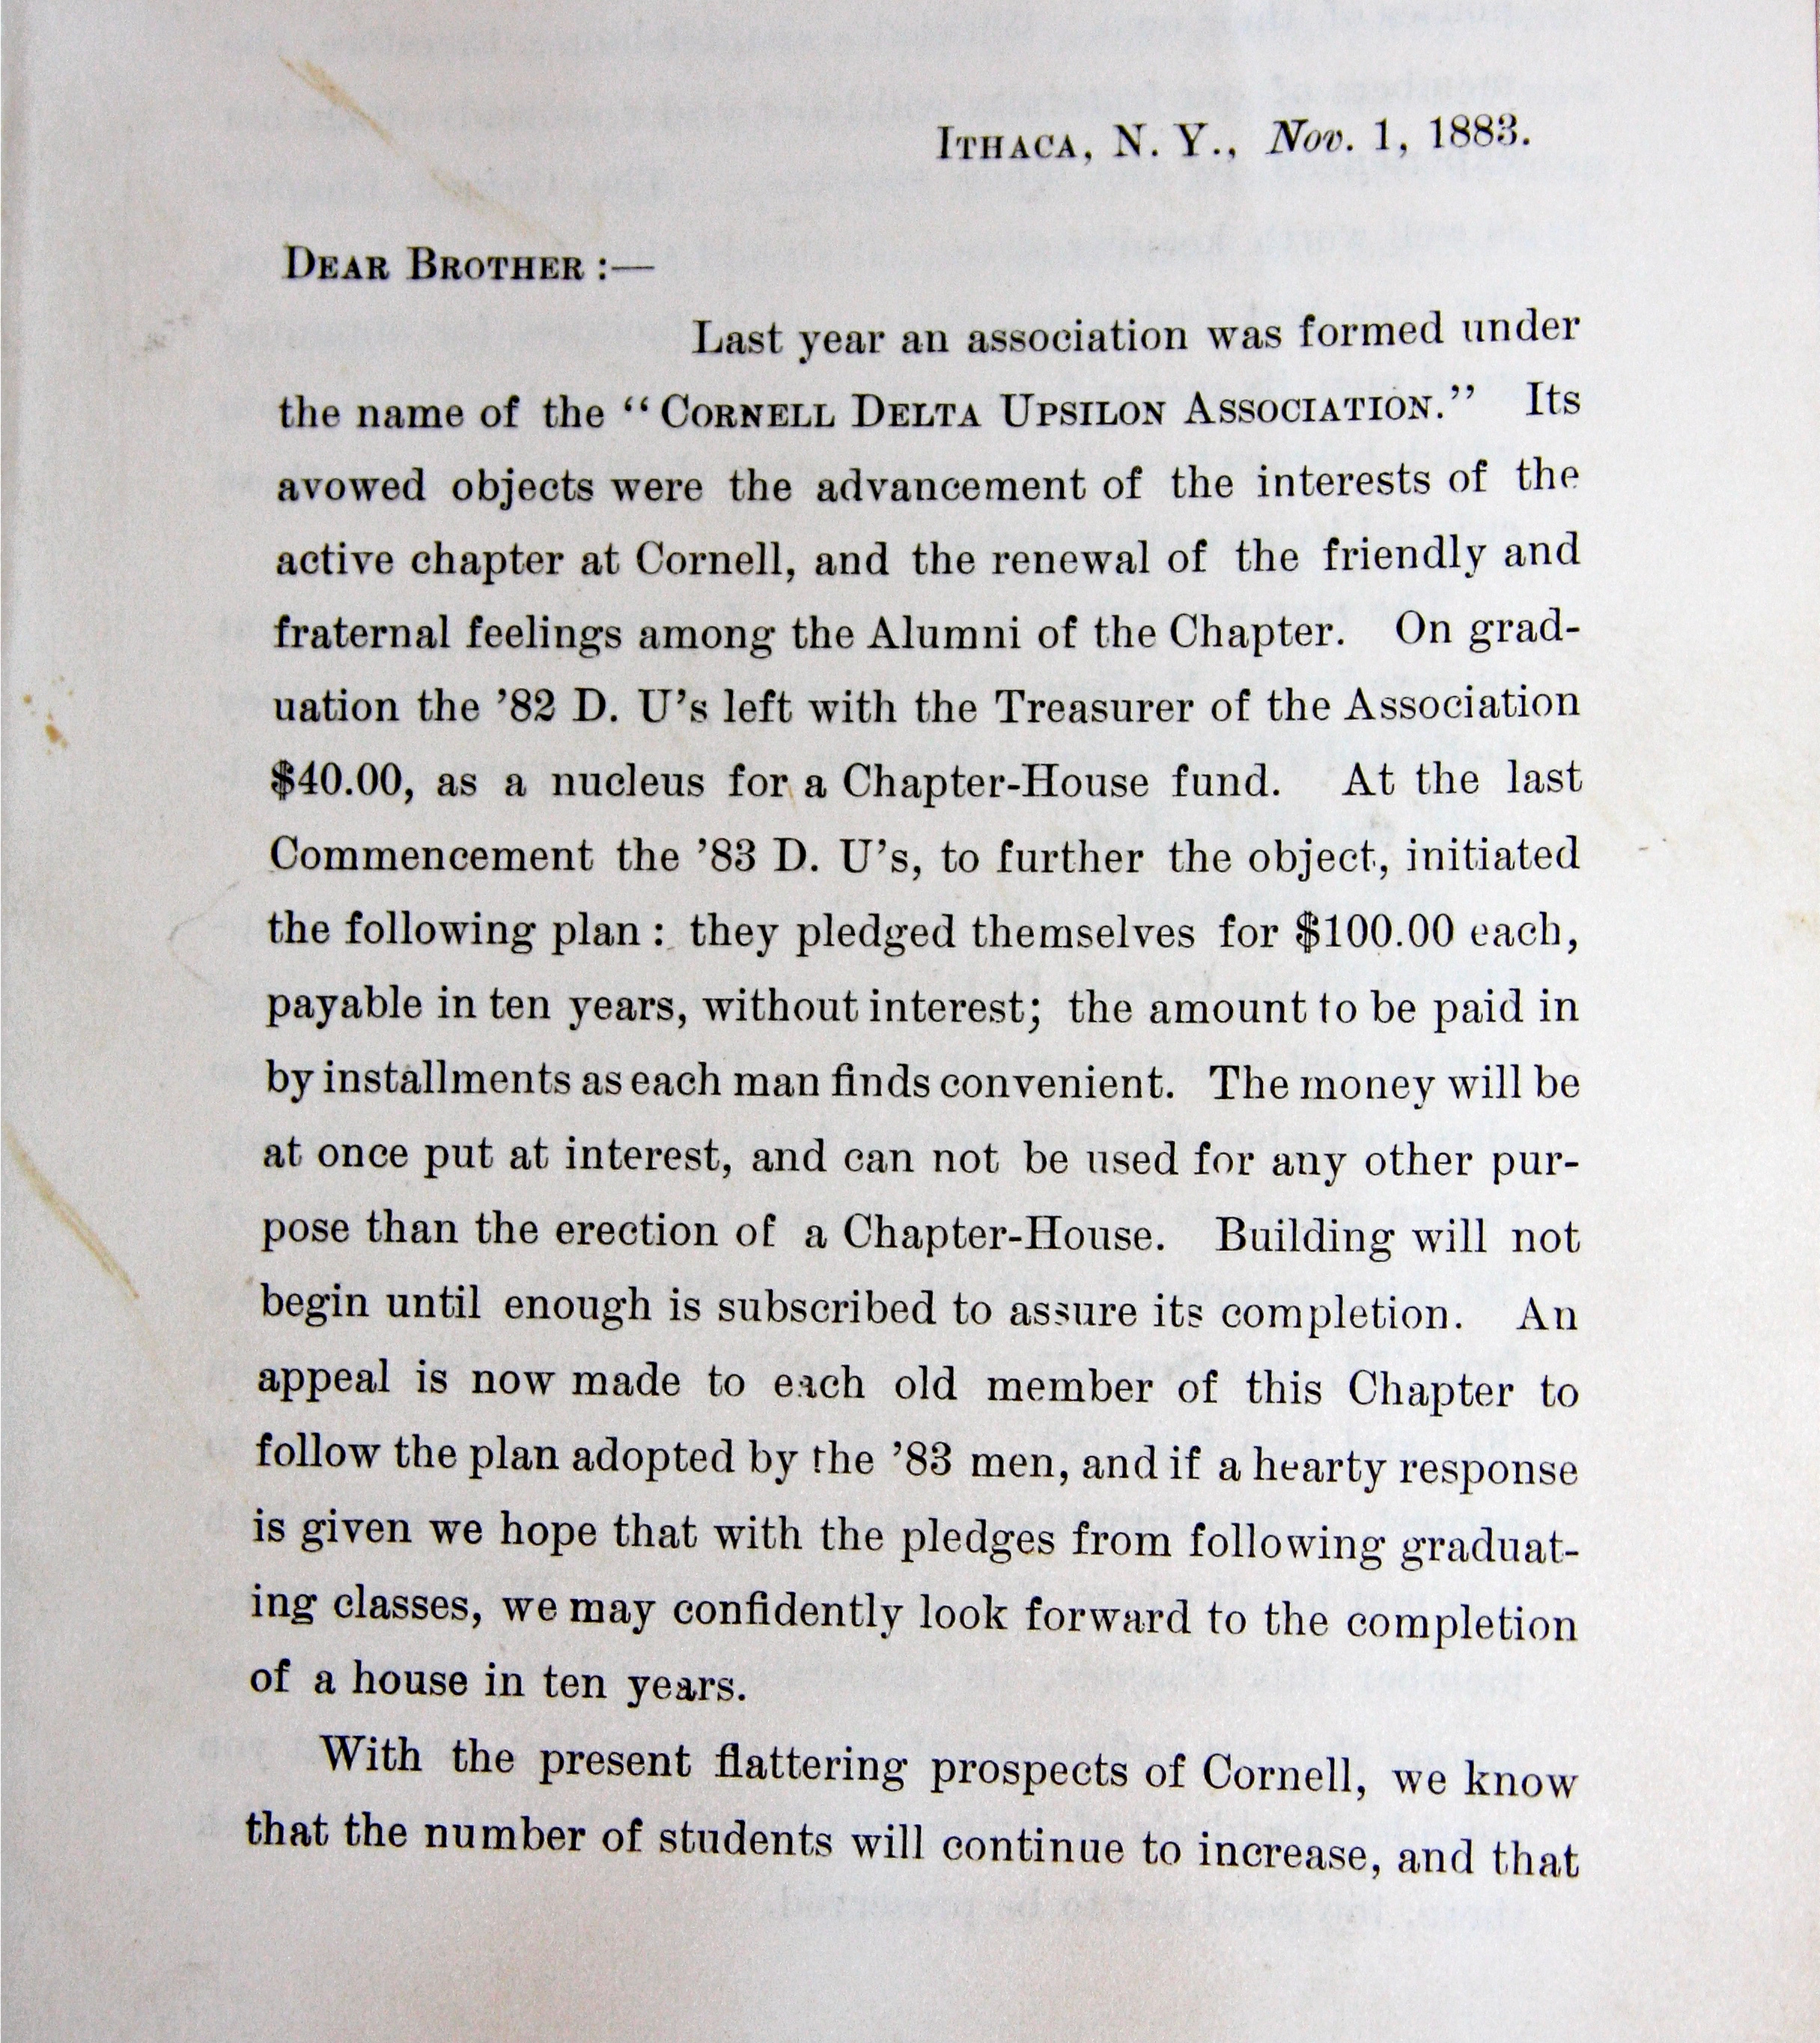 Circular Addressing Need for Chapter House 1883